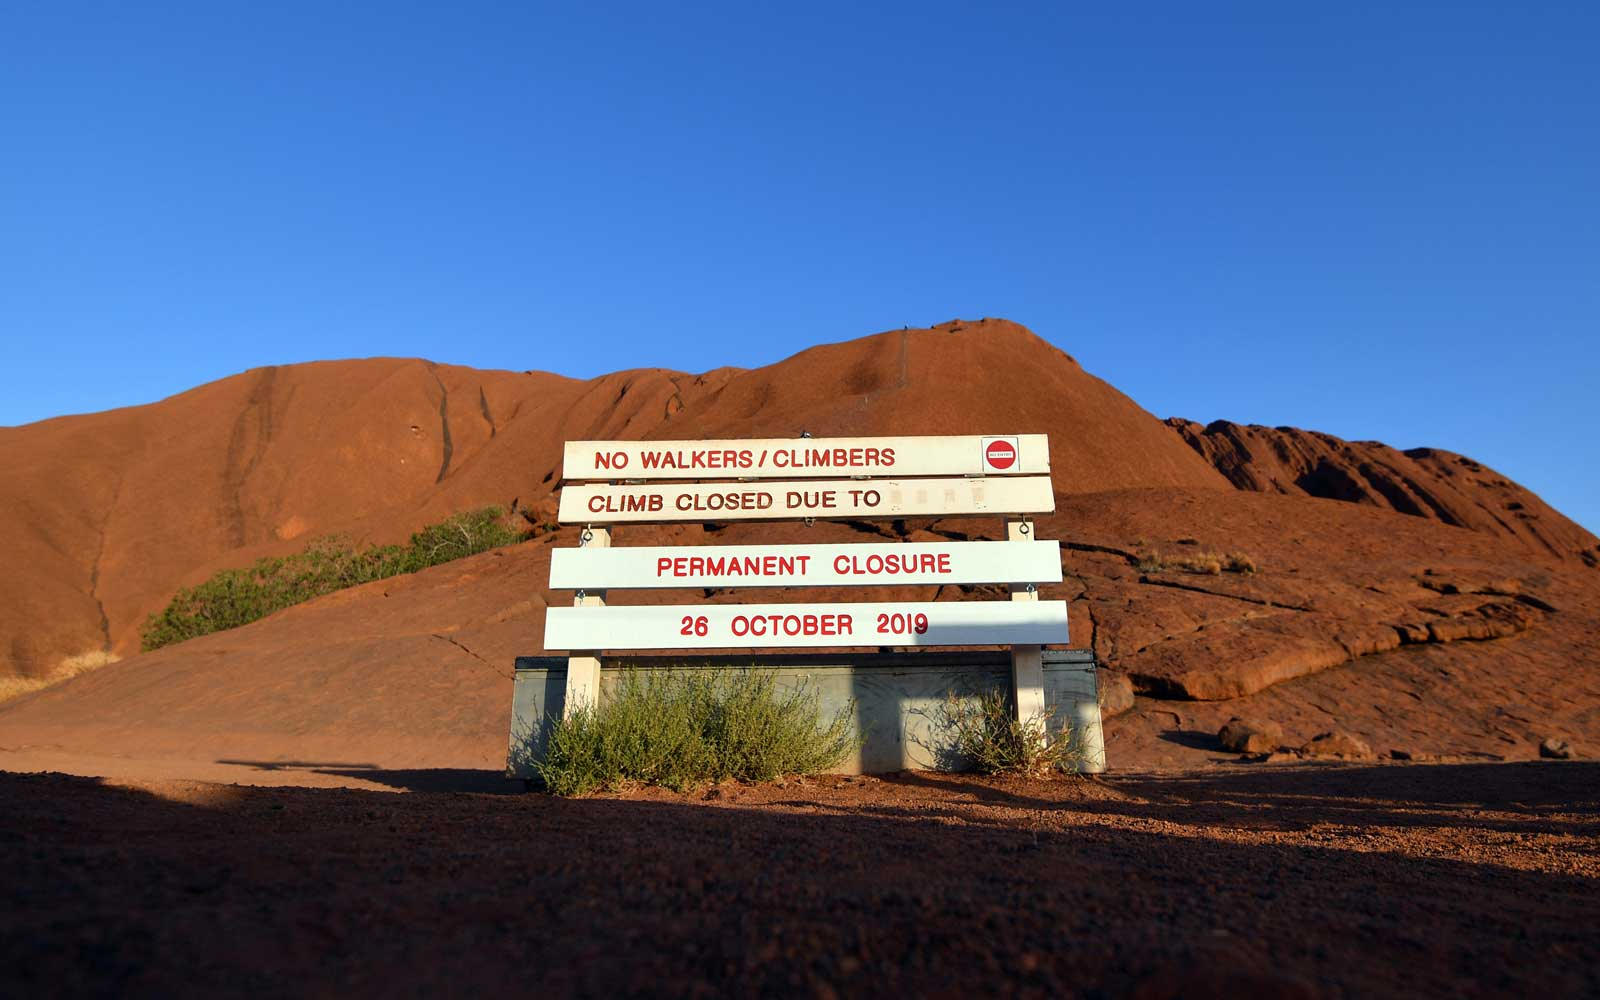 New signage marking a permanent ban on climbing Uluru, also known as Ayers Rock, is seen at the base of the monolith at Uluru-Kata Tjuta National Park in Australia's Northern Territory on October 25, 2019